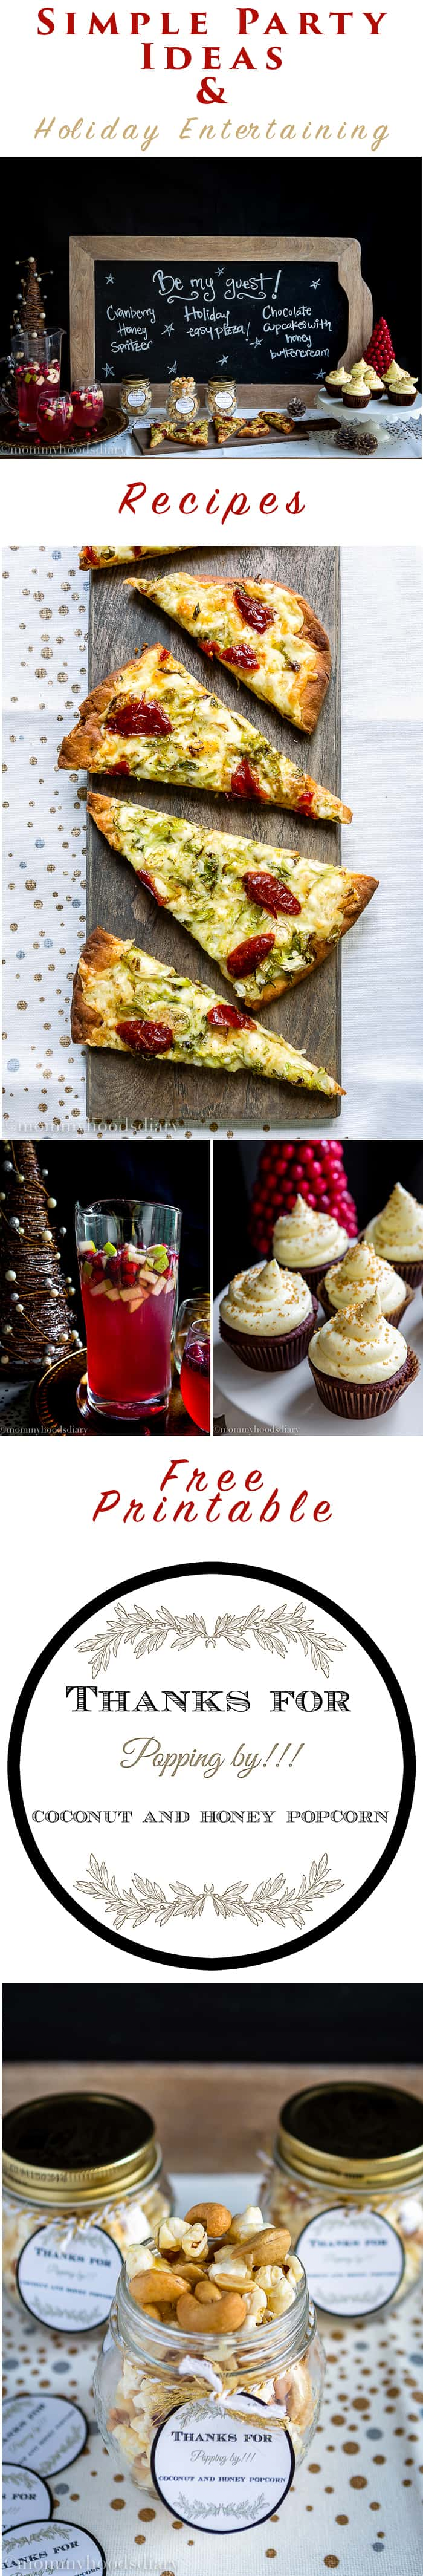 Simple Party Ideas and Holiday Entertaining   Mommyhood's Diary